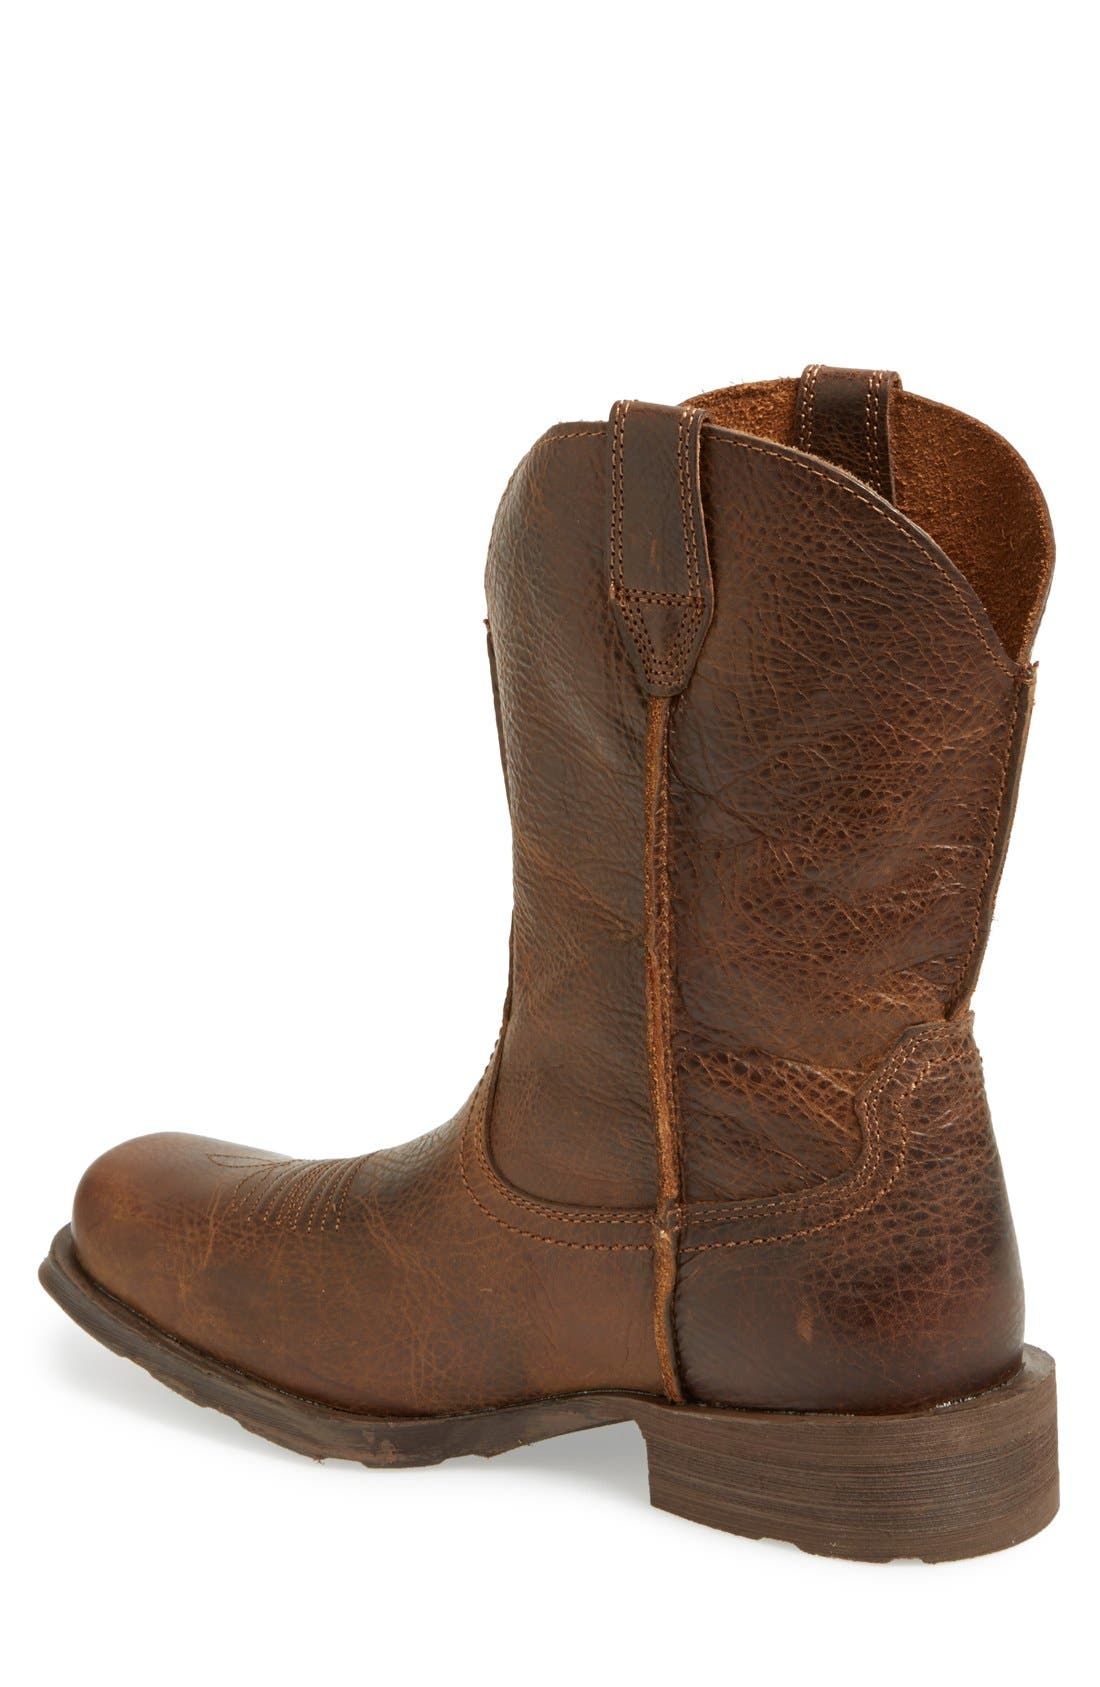 Alternate Image 2  - Ariat 'Rambler' Square Toe Leather Cowboy Boot (Men)